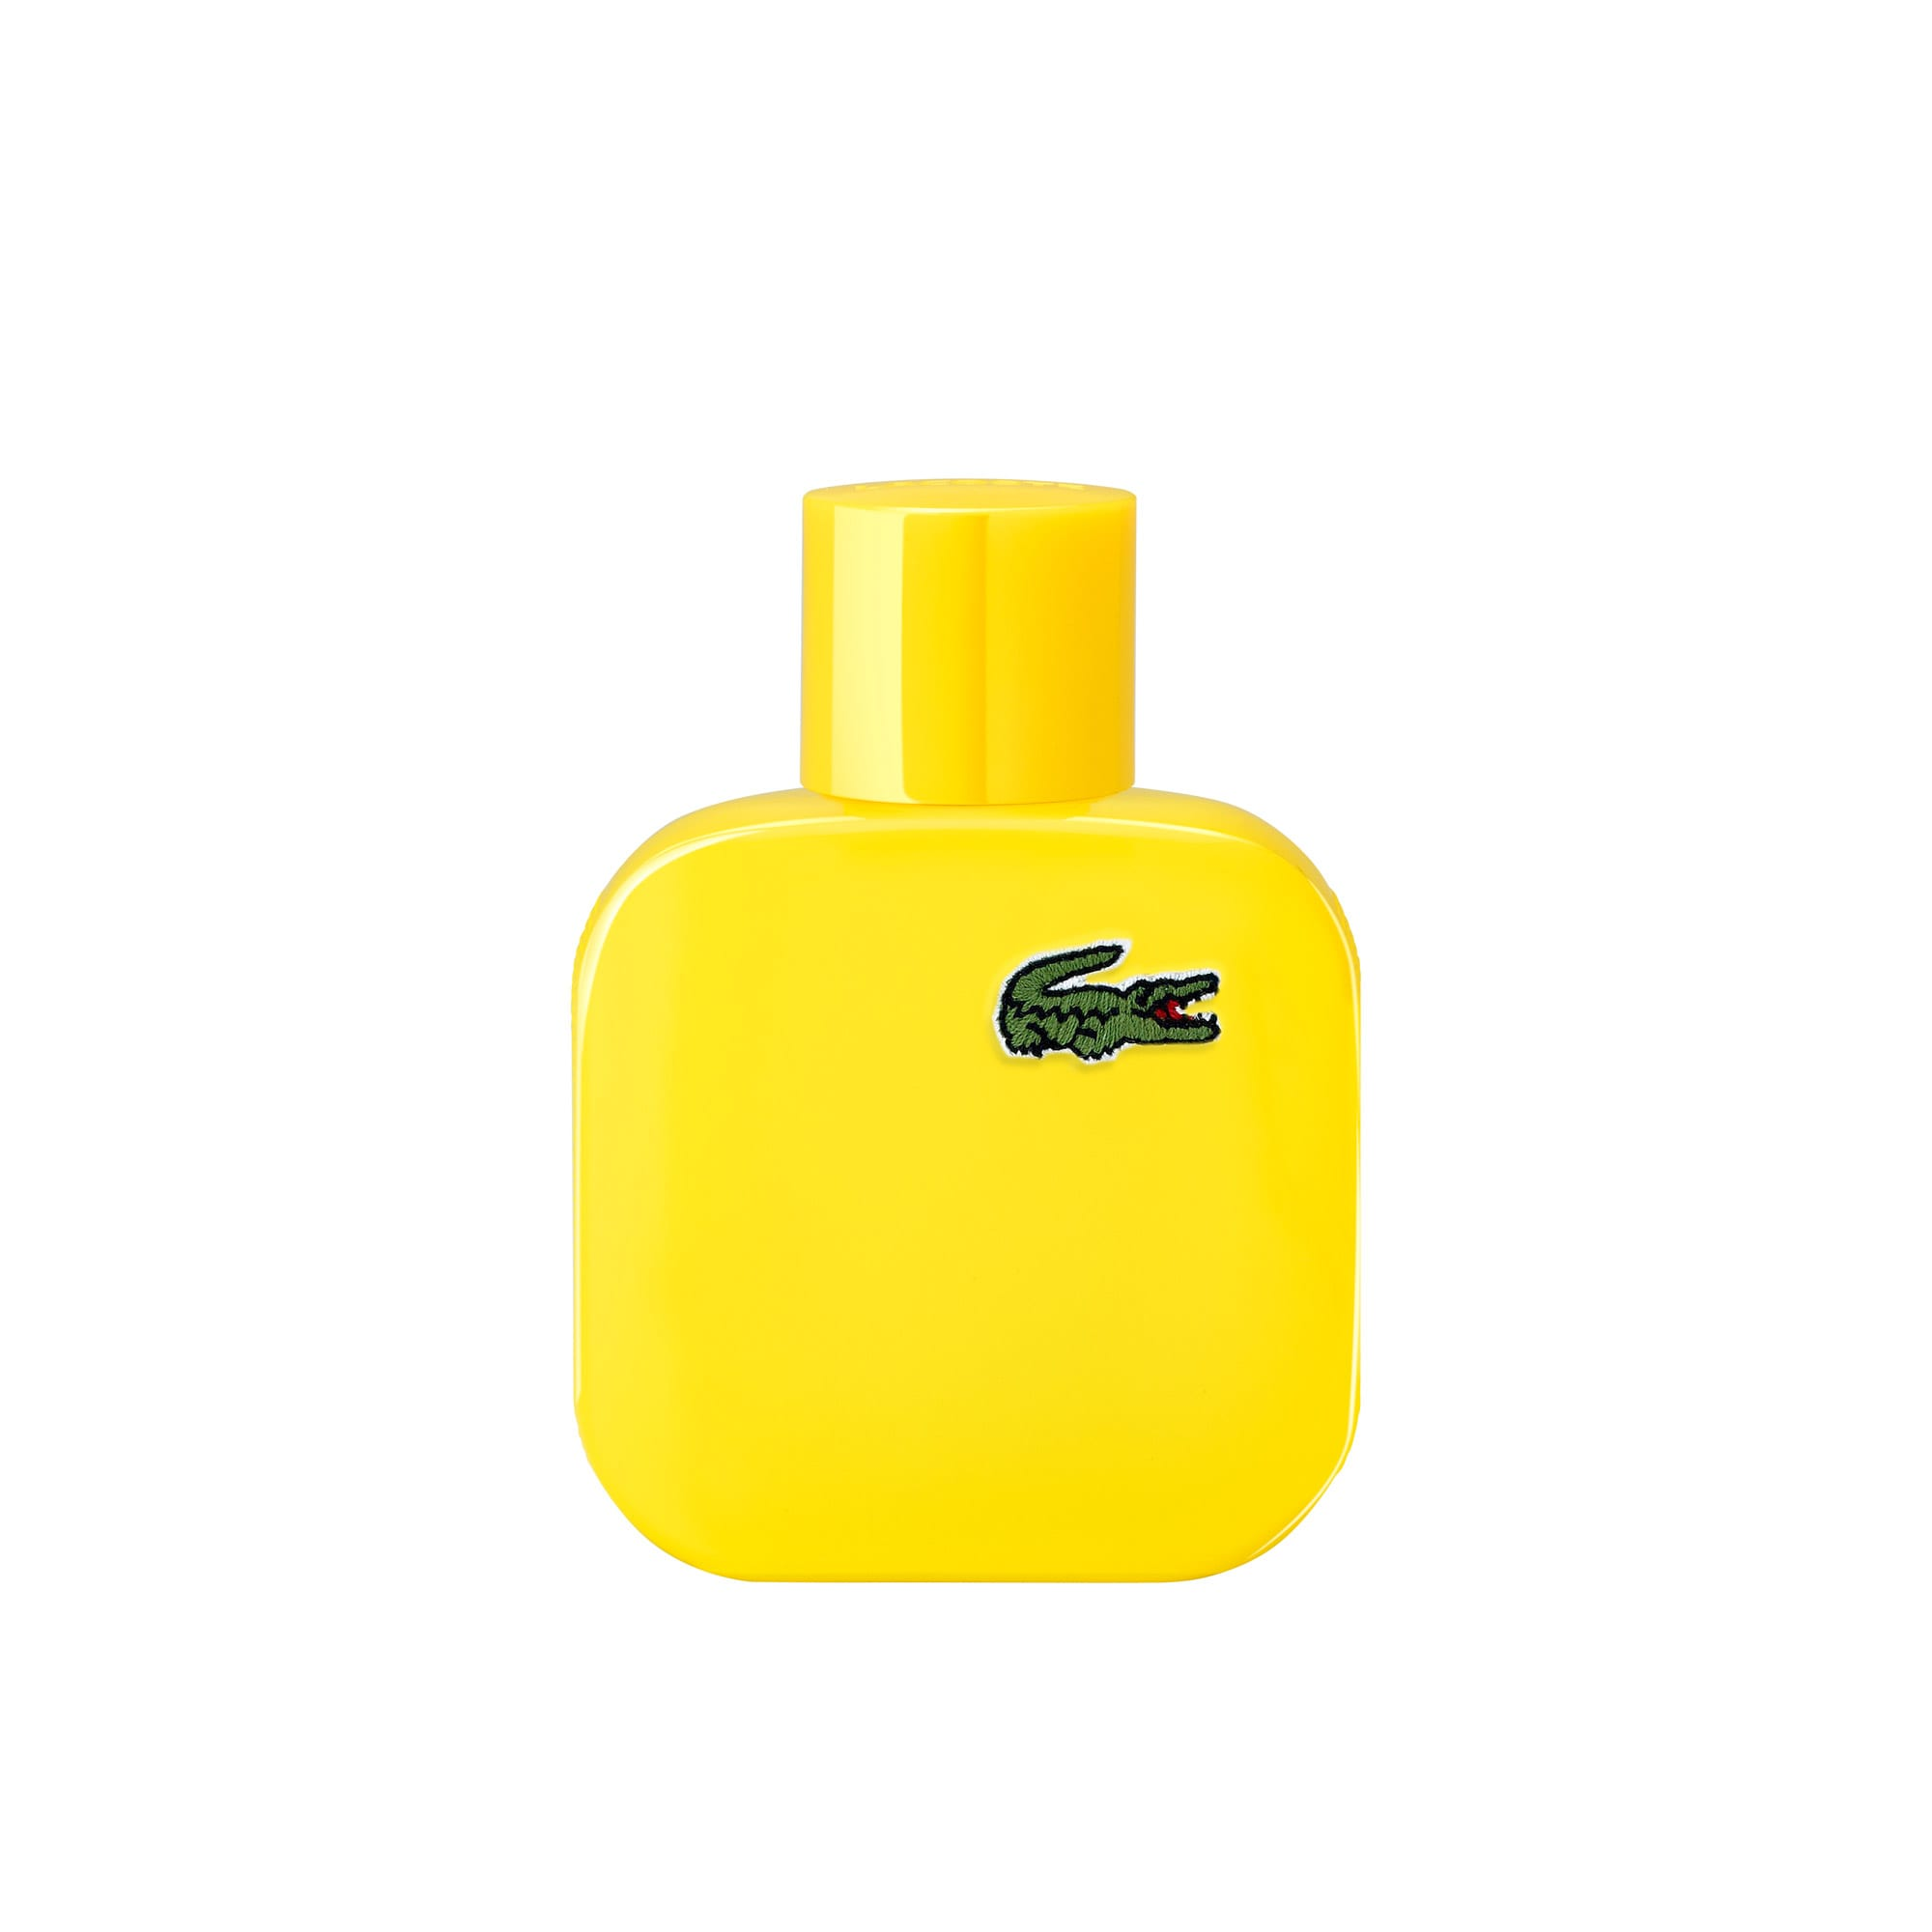 Eau de Lacoste L.12.12 Yellow Eau de Toilette 50 ml